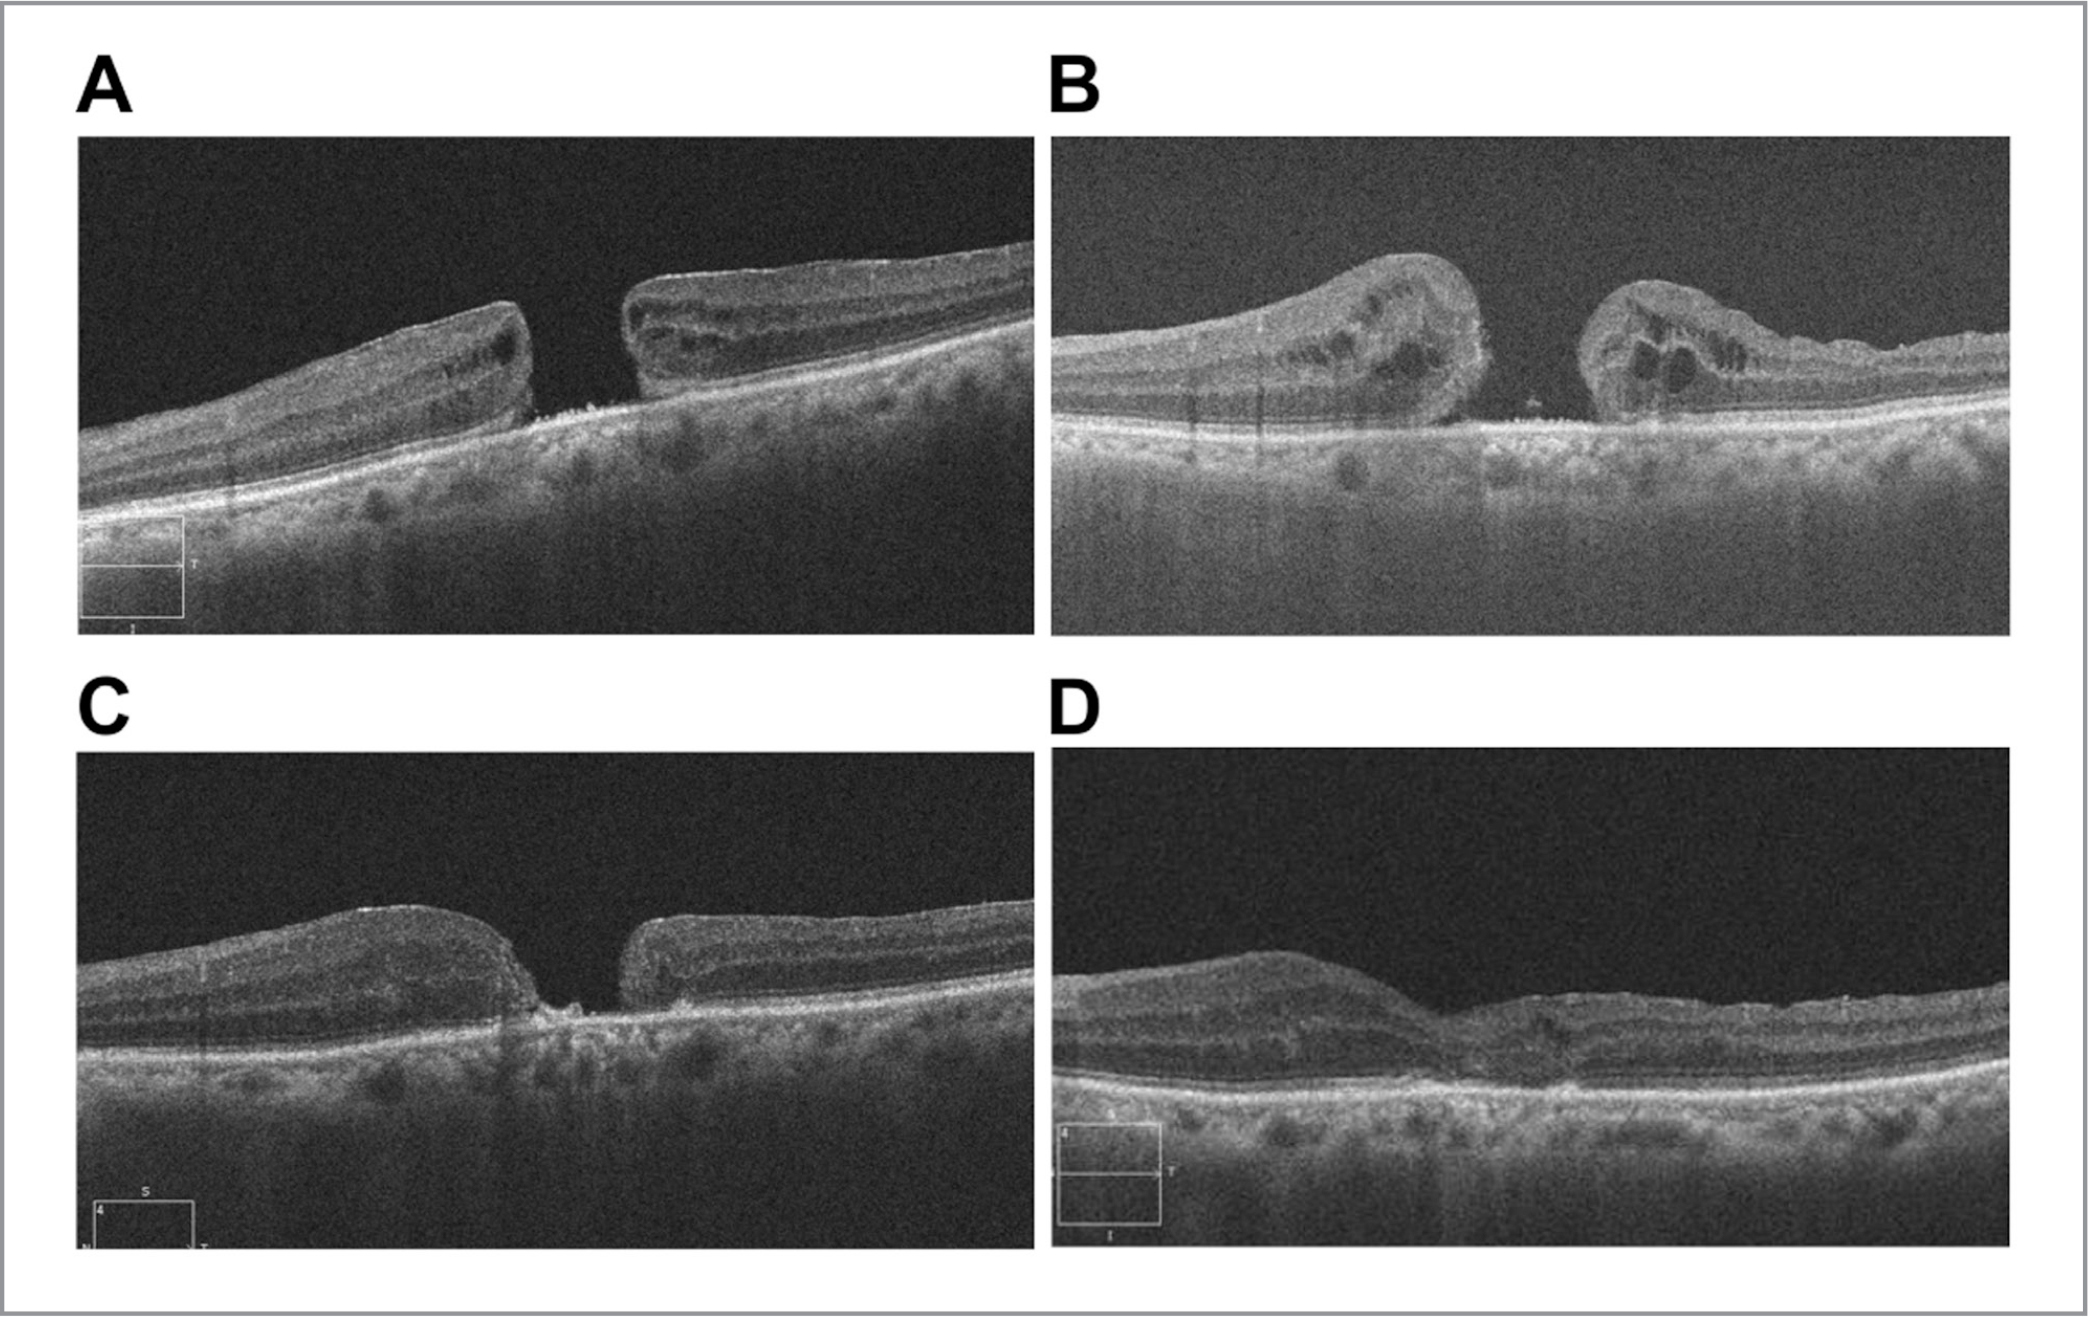 (A) Preoperative photograph of the left eye obtained by optical coherence tomography. (B) Four months after the first surgery, the full-thickness retinal tissue defect persisted. (C) Two months after the second surgery, the macular hole was smaller but had not closed. (D) Four months after the third surgery, the hole was closed.